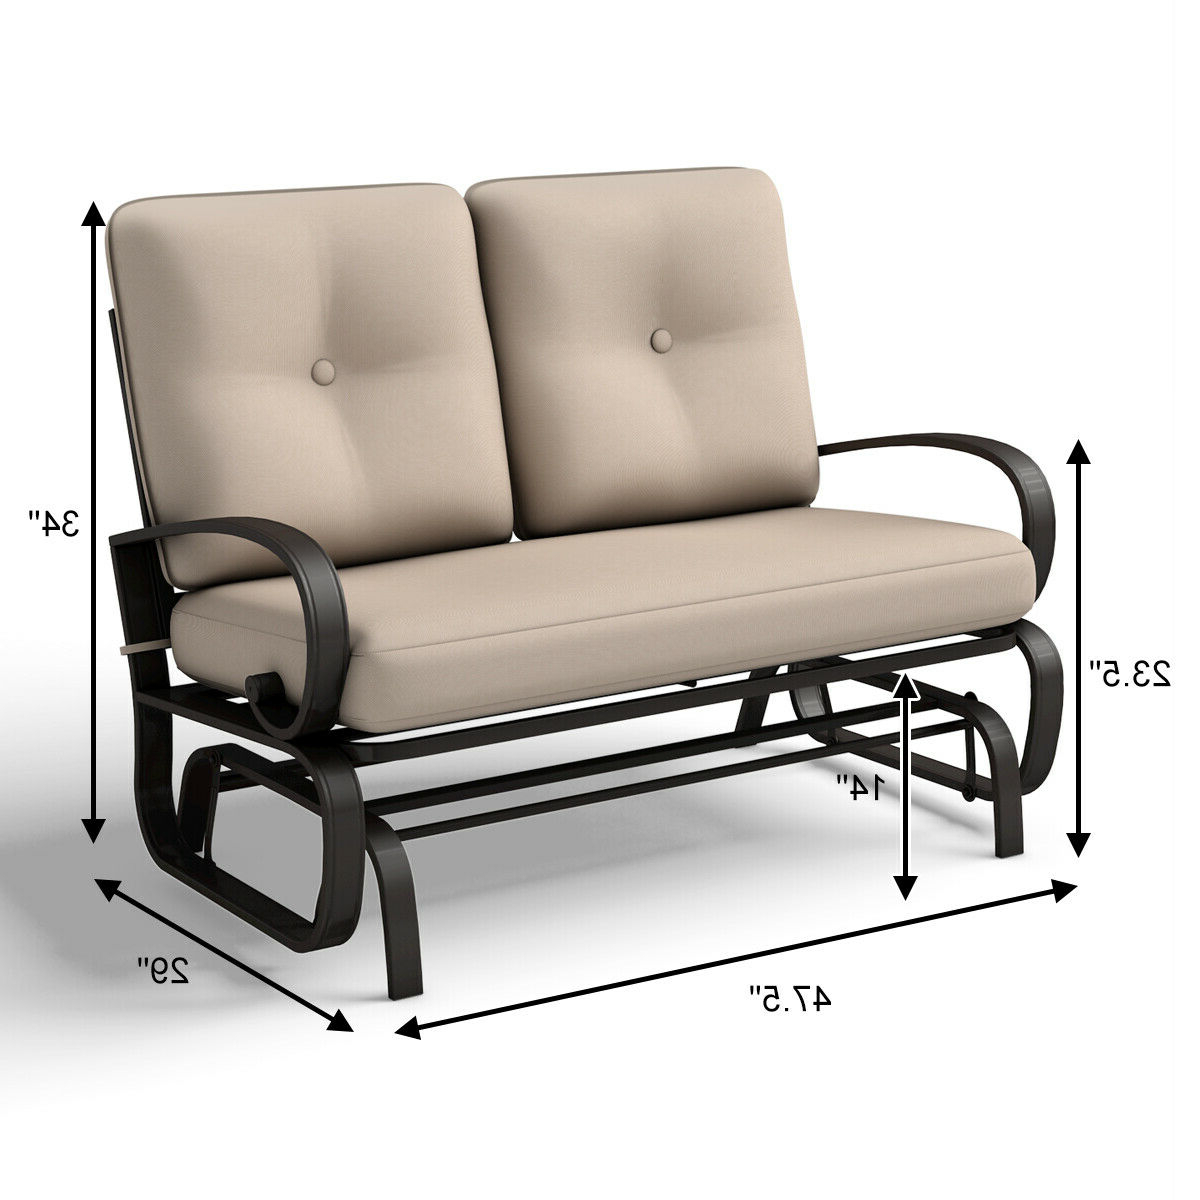 Most Up To Date Costway Glider Outdoor Patio Rocking Bench Loveseat For 1 Person Antique Black Steel Outdoor Gliders (View 16 of 25)